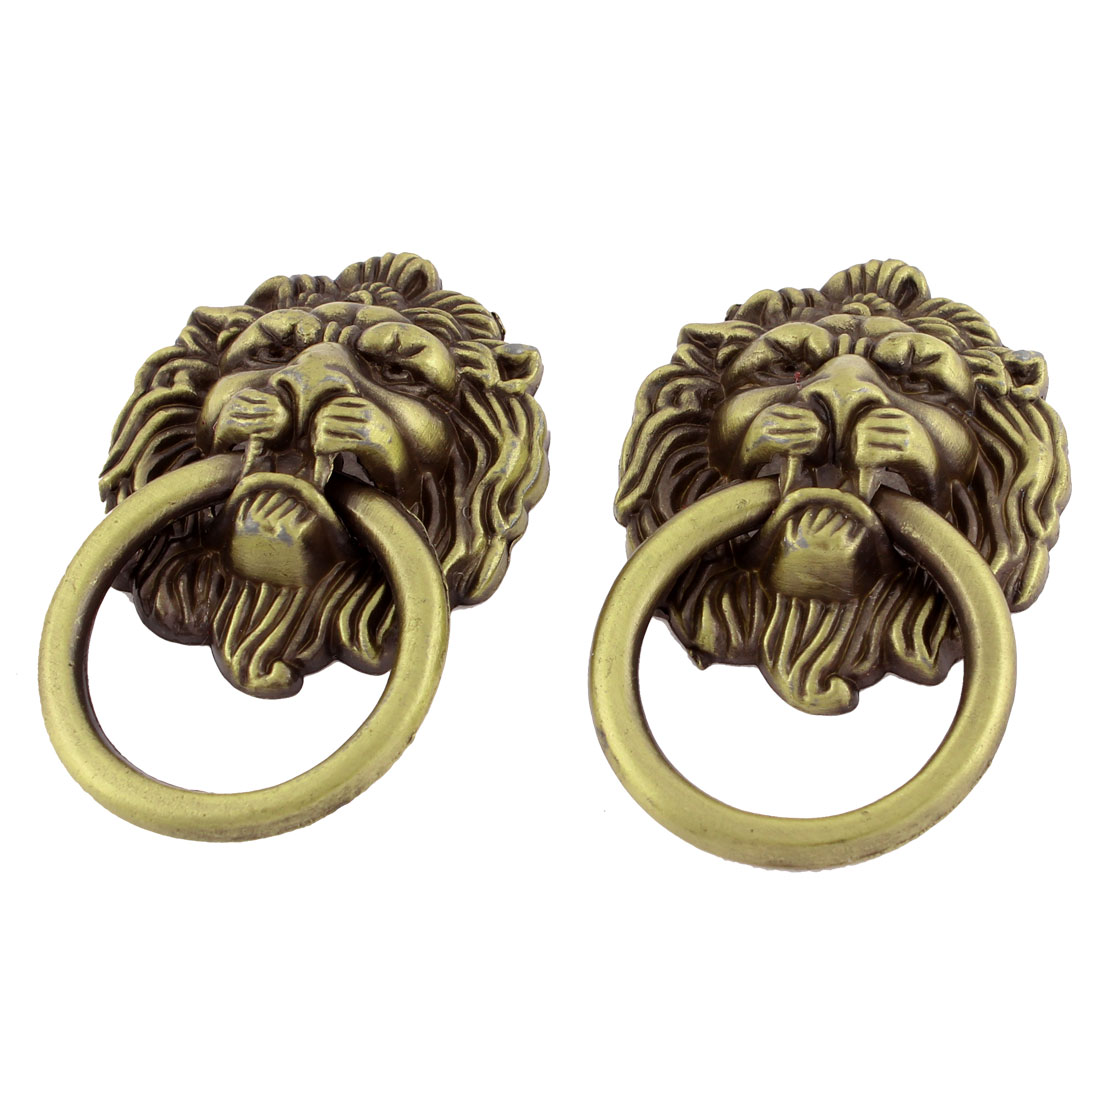 2 Pcs Bronze Tone Lion Head Antique Style Drawer Ring Pull Handle Knob